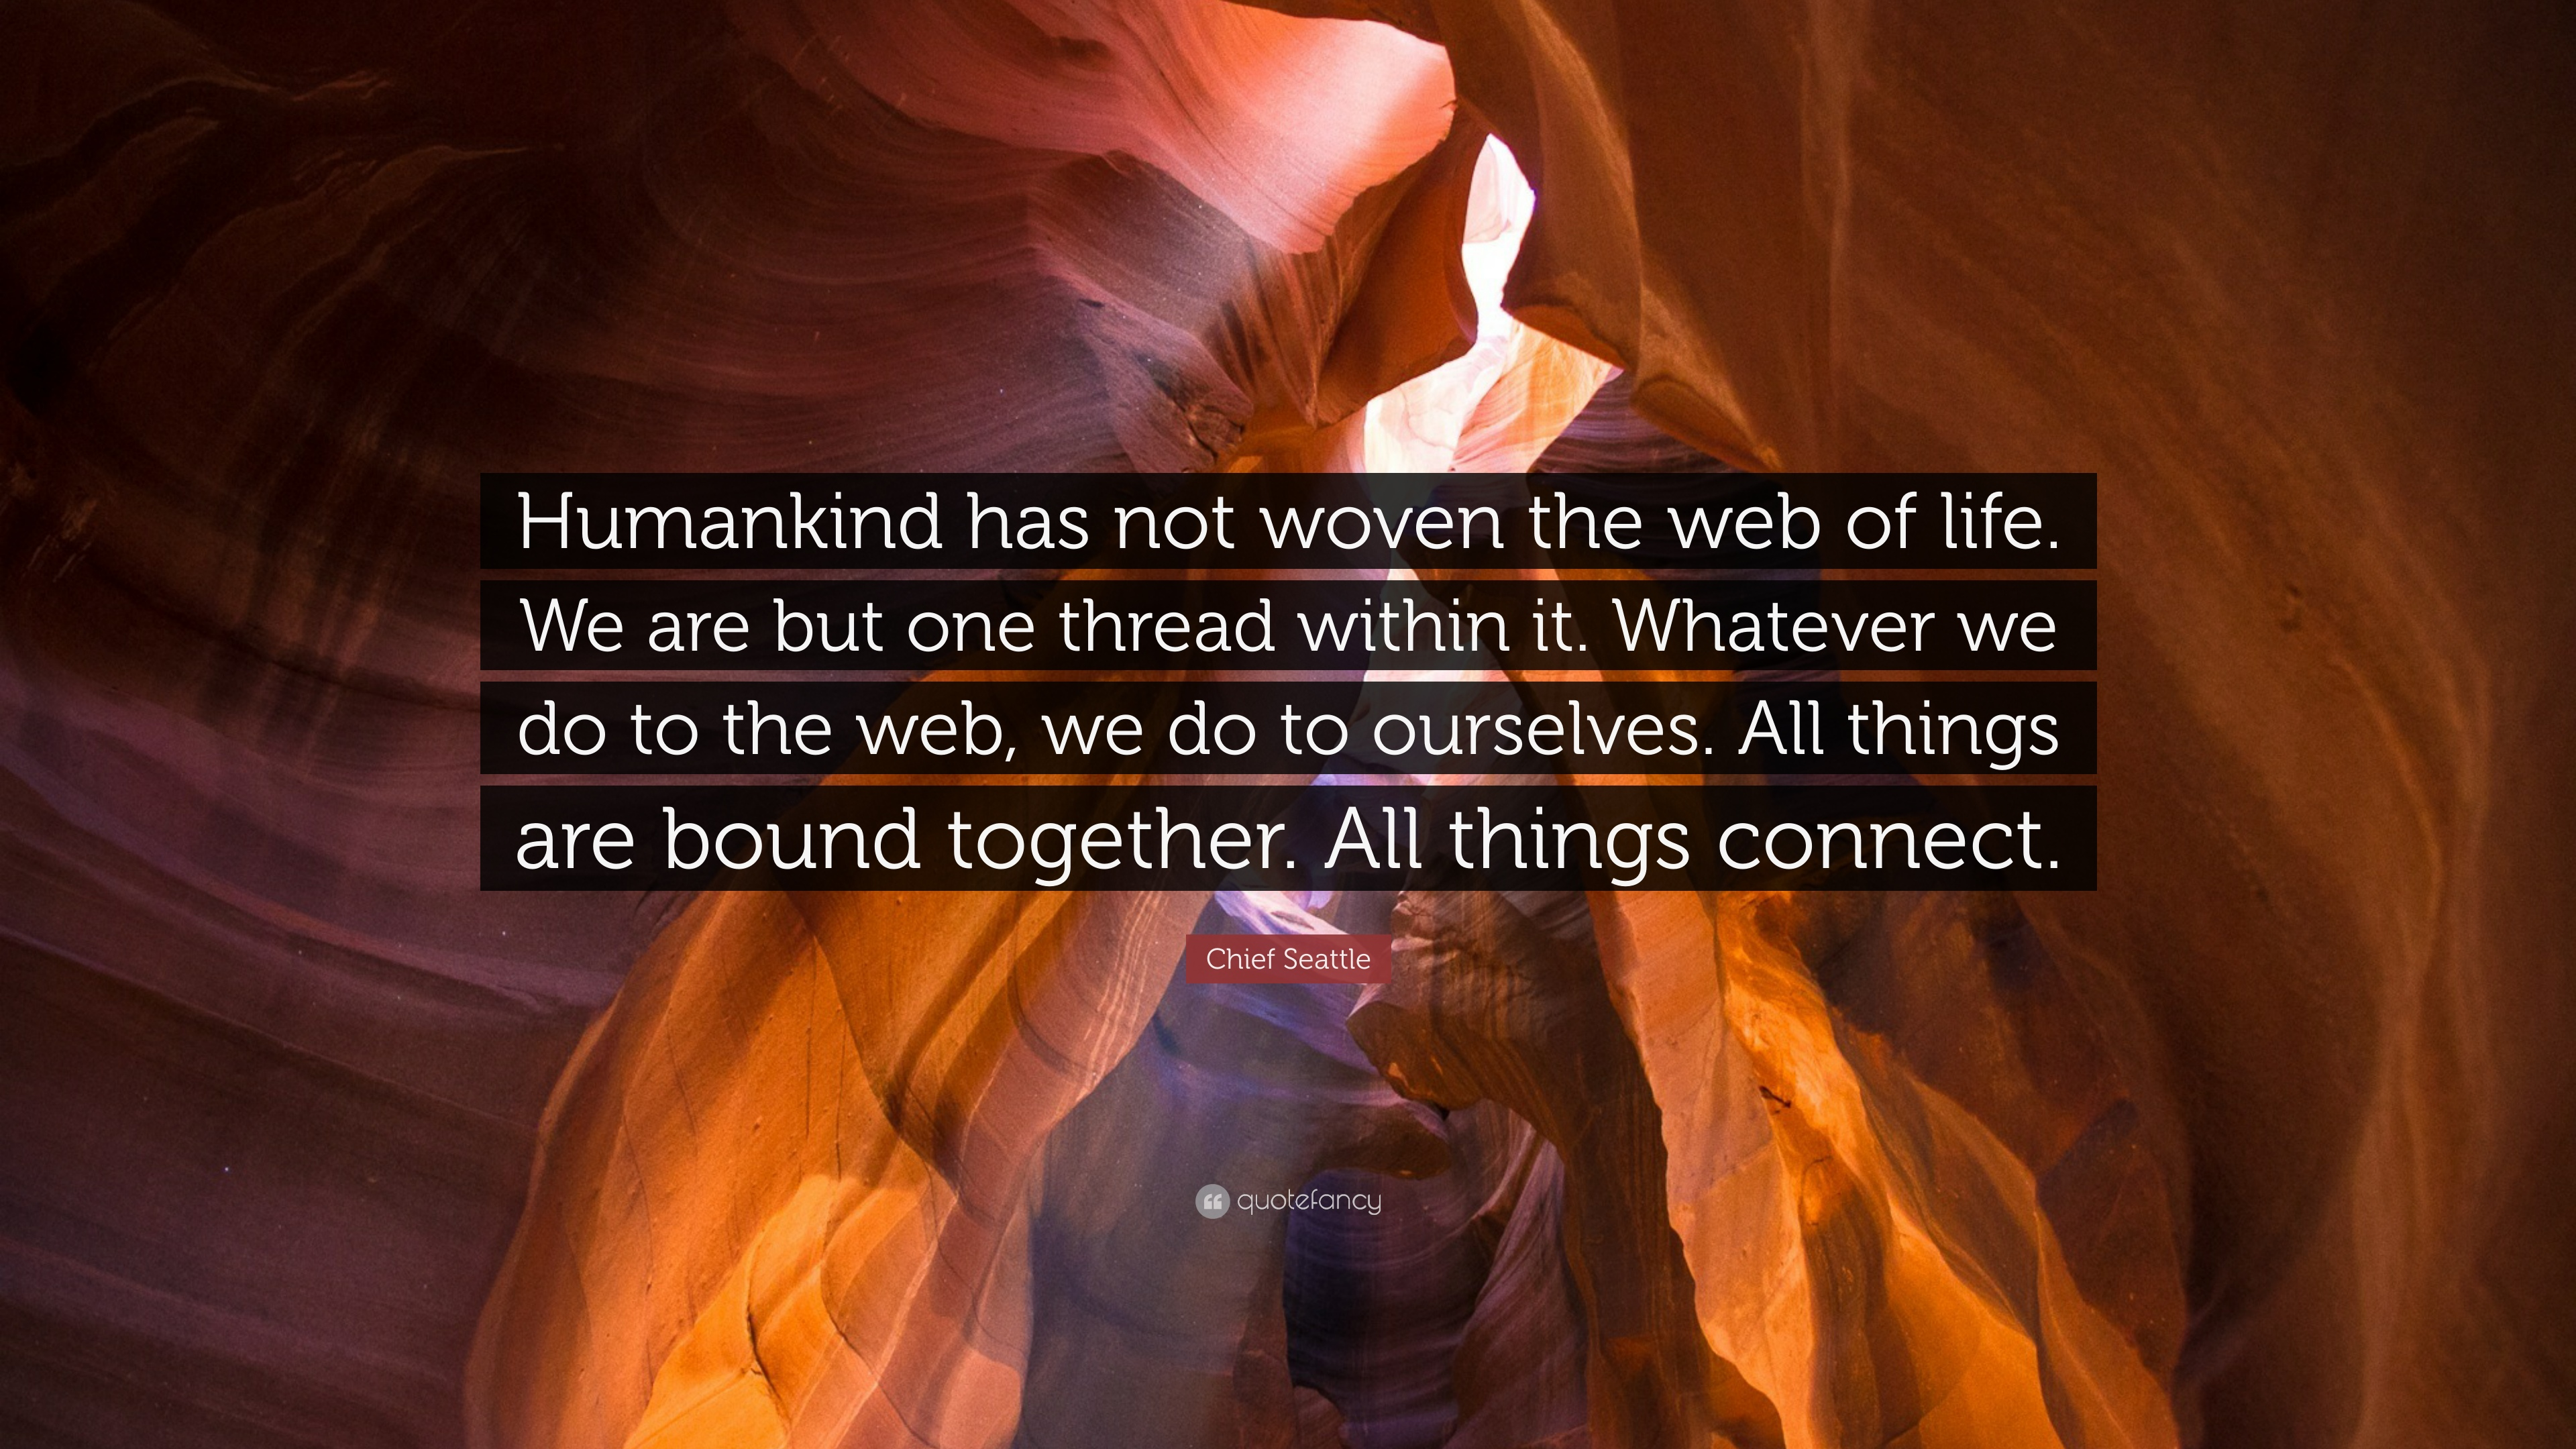 https://quotefancy.com/media/wallpaper/3840x2160/1087756-Chief-Seattle-Quote-Humankind-has-not-woven-the-web-of-life-We-are.jpg